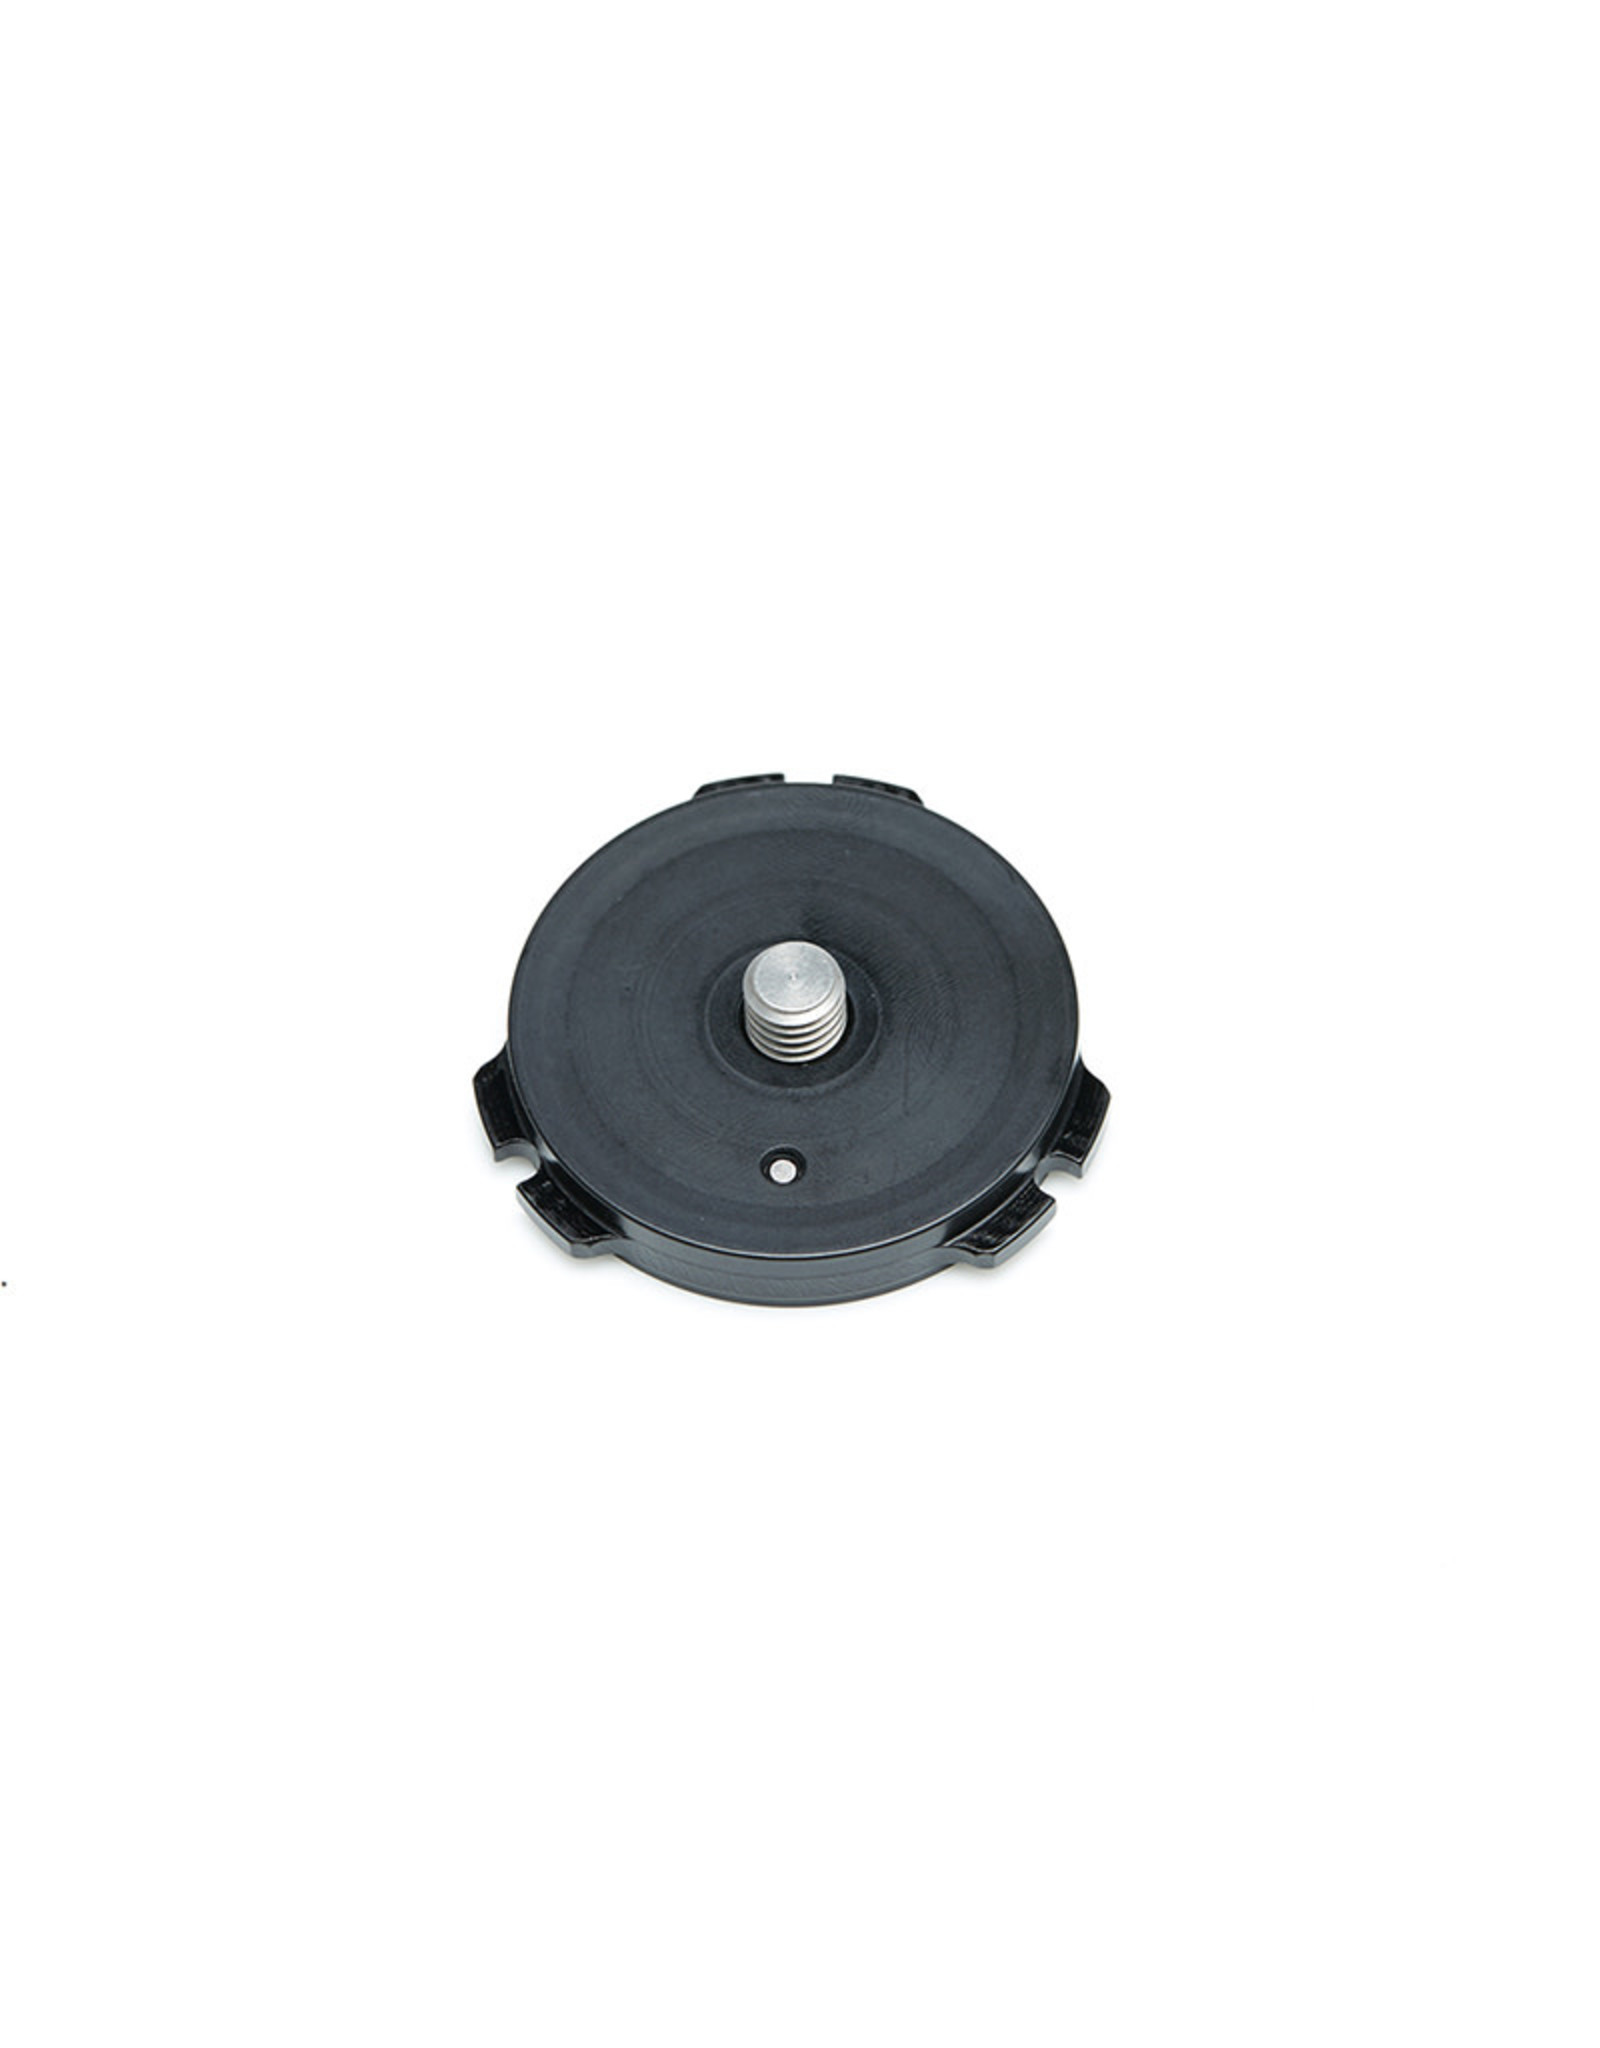 Arca Swiss Arca Swiss Quick-Link Disk only for Tripod head